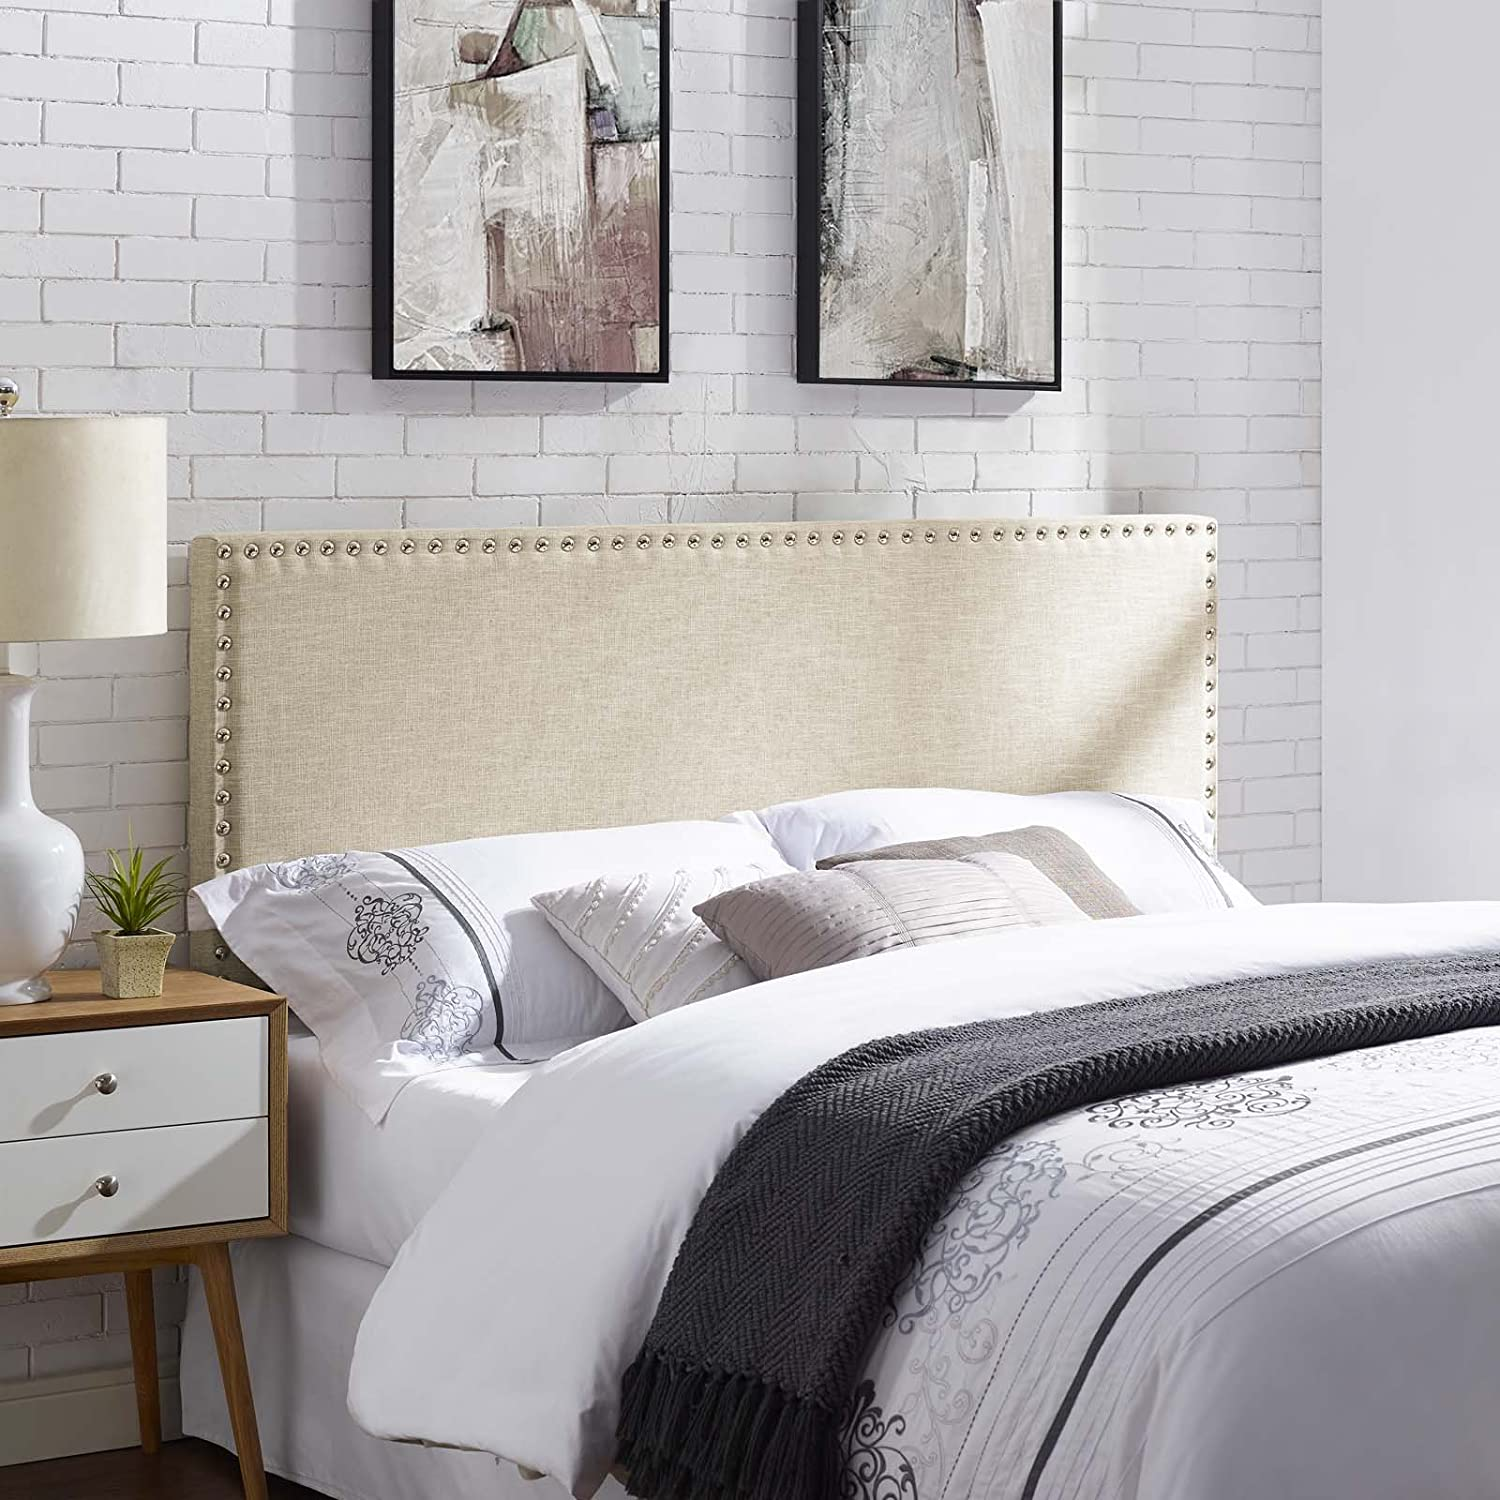 Modway Phoebe Linen Fabric Upholstered King Headboard in Beige with Nailhead Trim